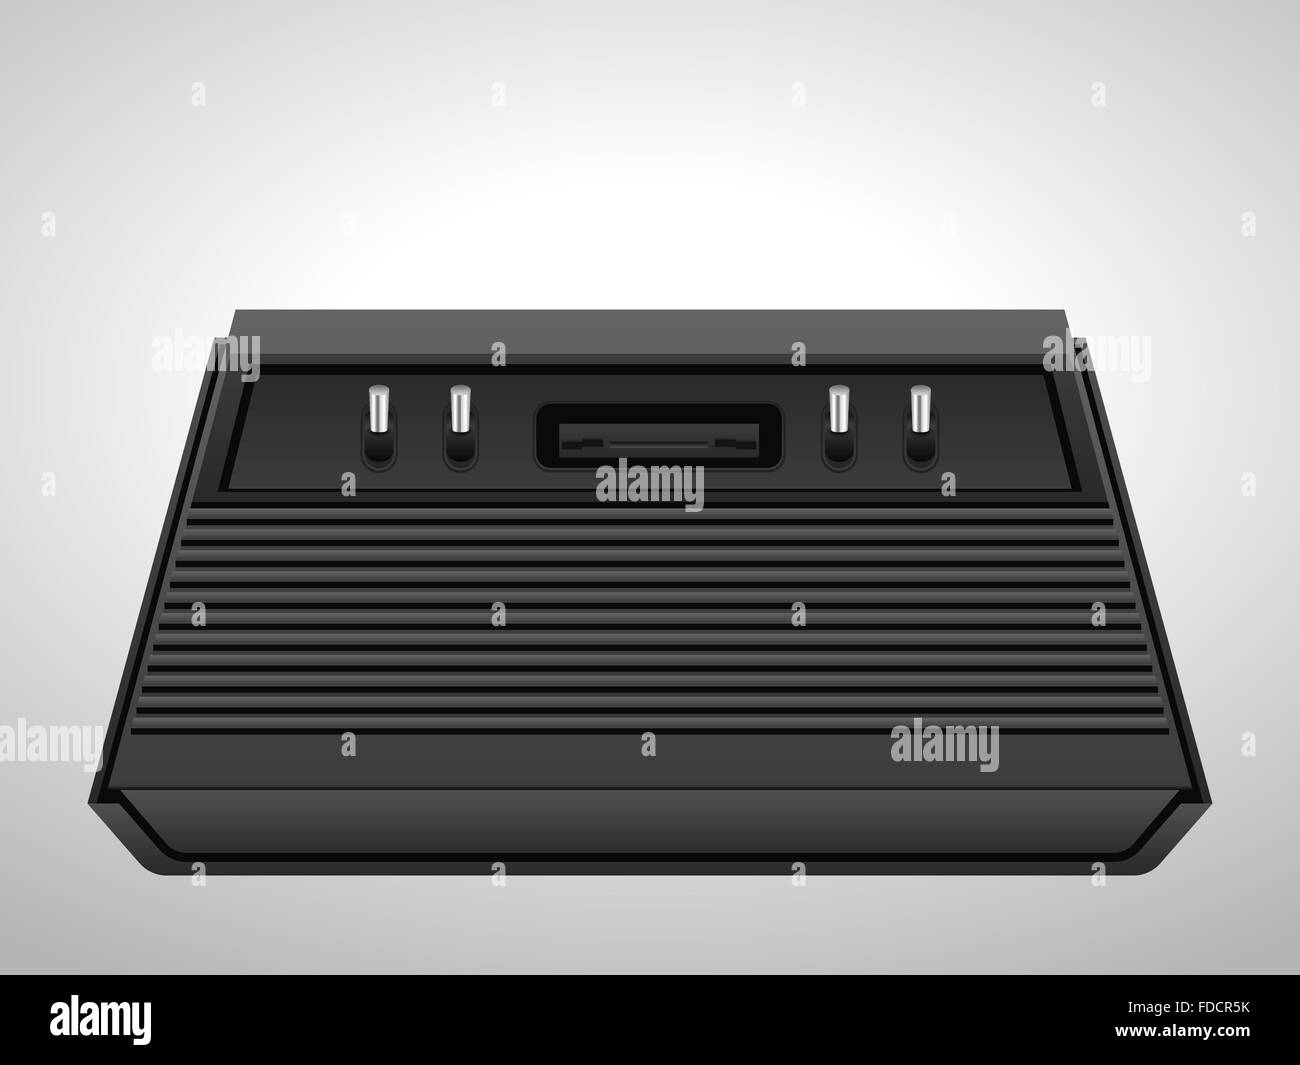 Retro console on a white background. - Stock Image